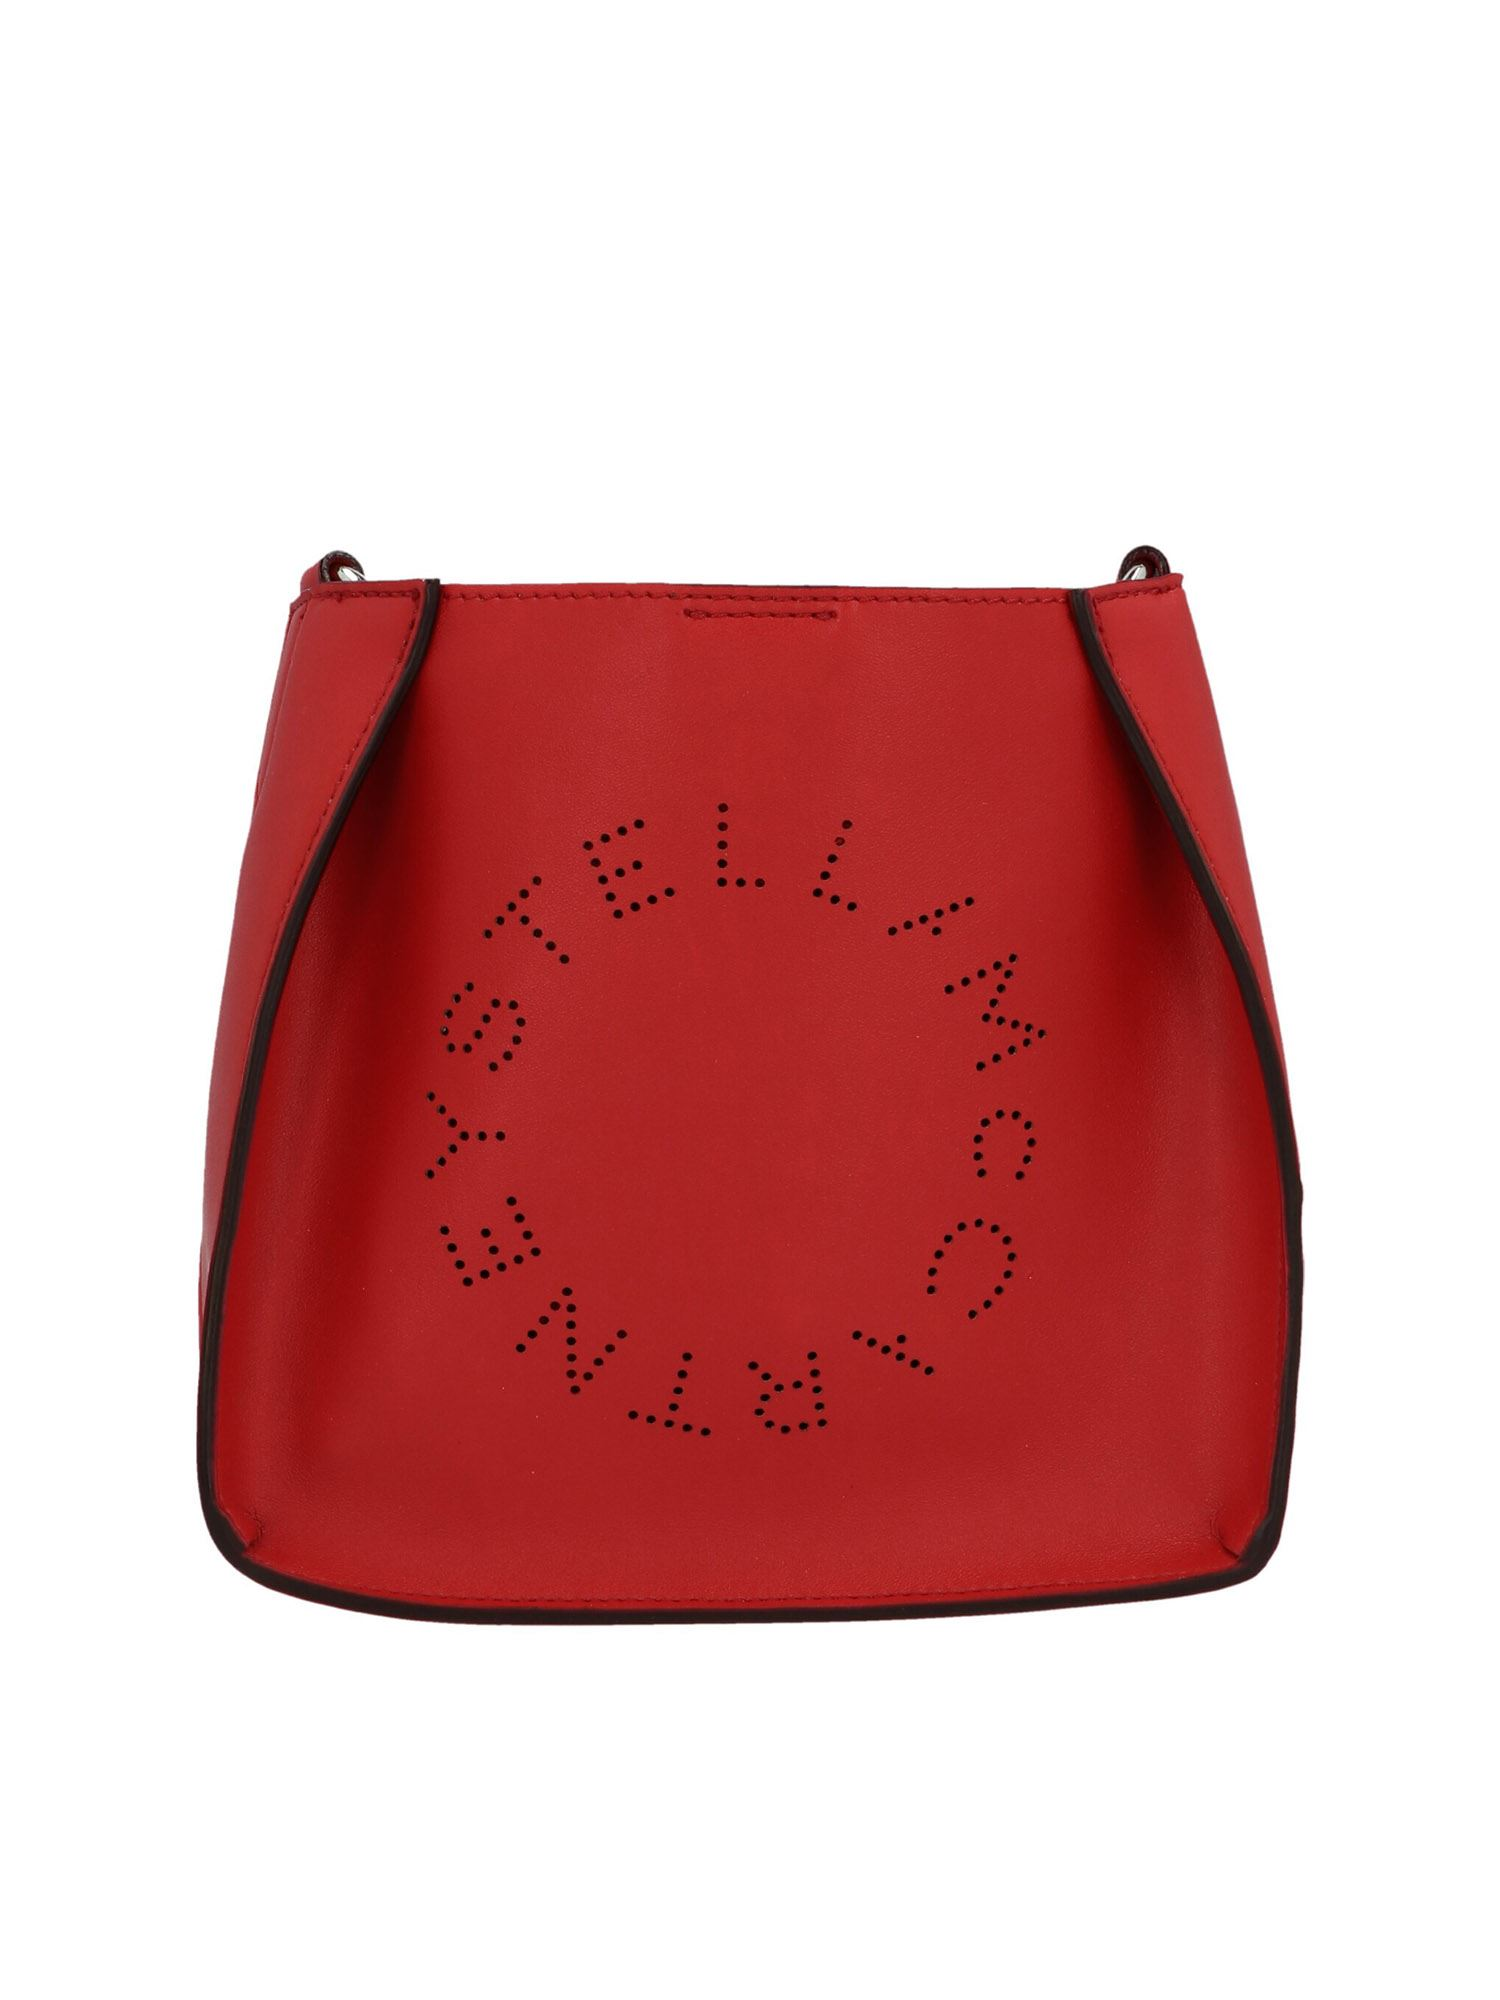 Stella Mccartney STELLA MCCARTNEY STELLA LOGO MINI BAG IN RED